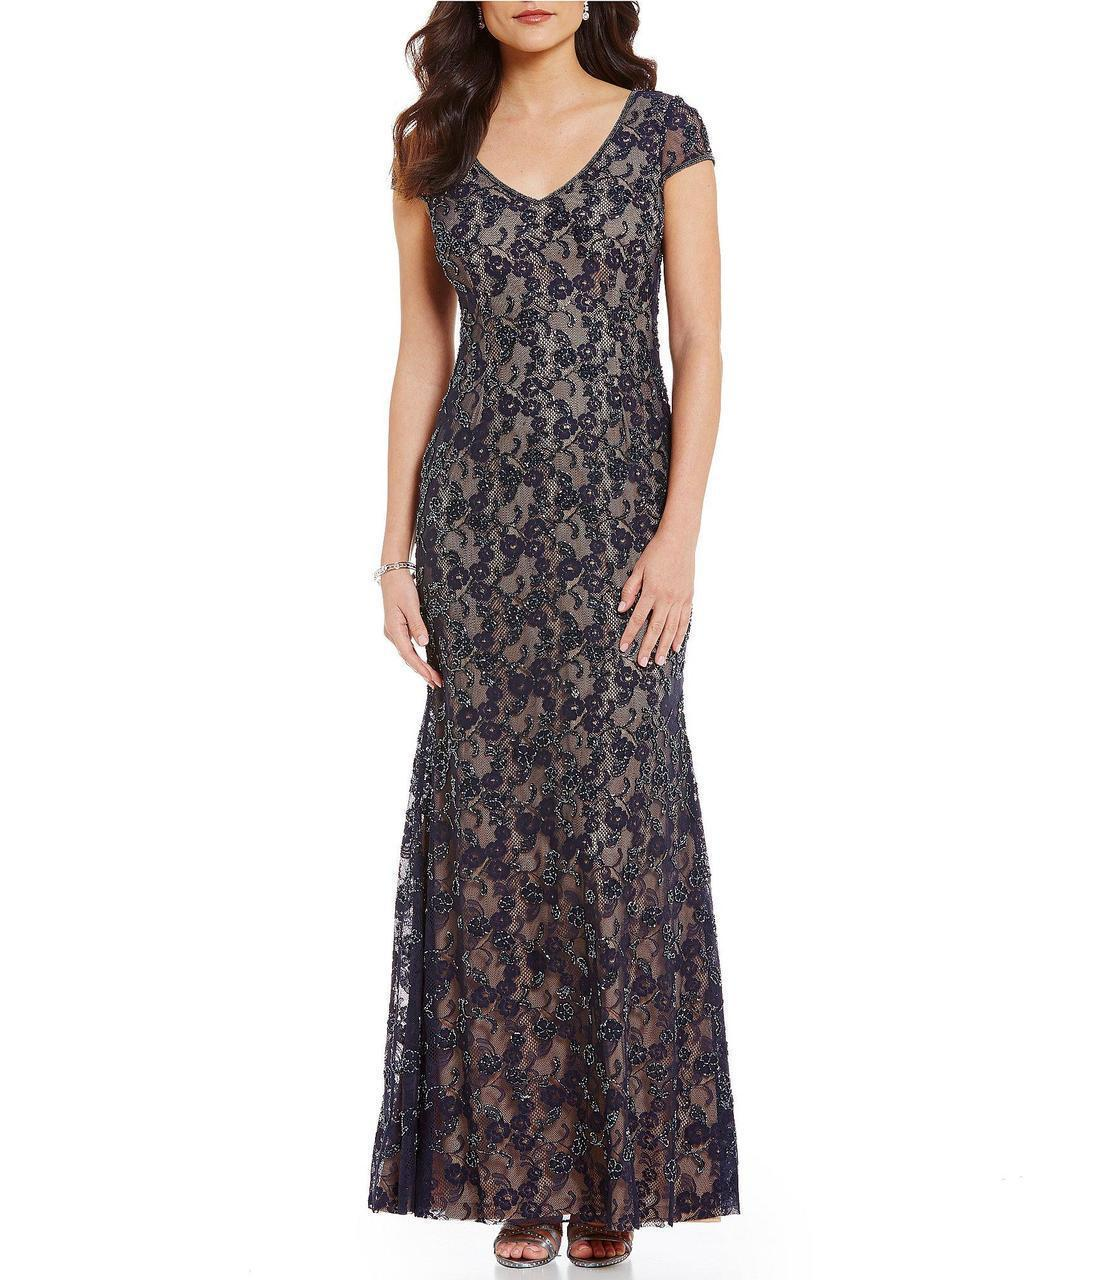 2d057253156d2 Lyst - Adrianna Papell - Cap Sleeve Lace Dress Ap1e201345 in Blue